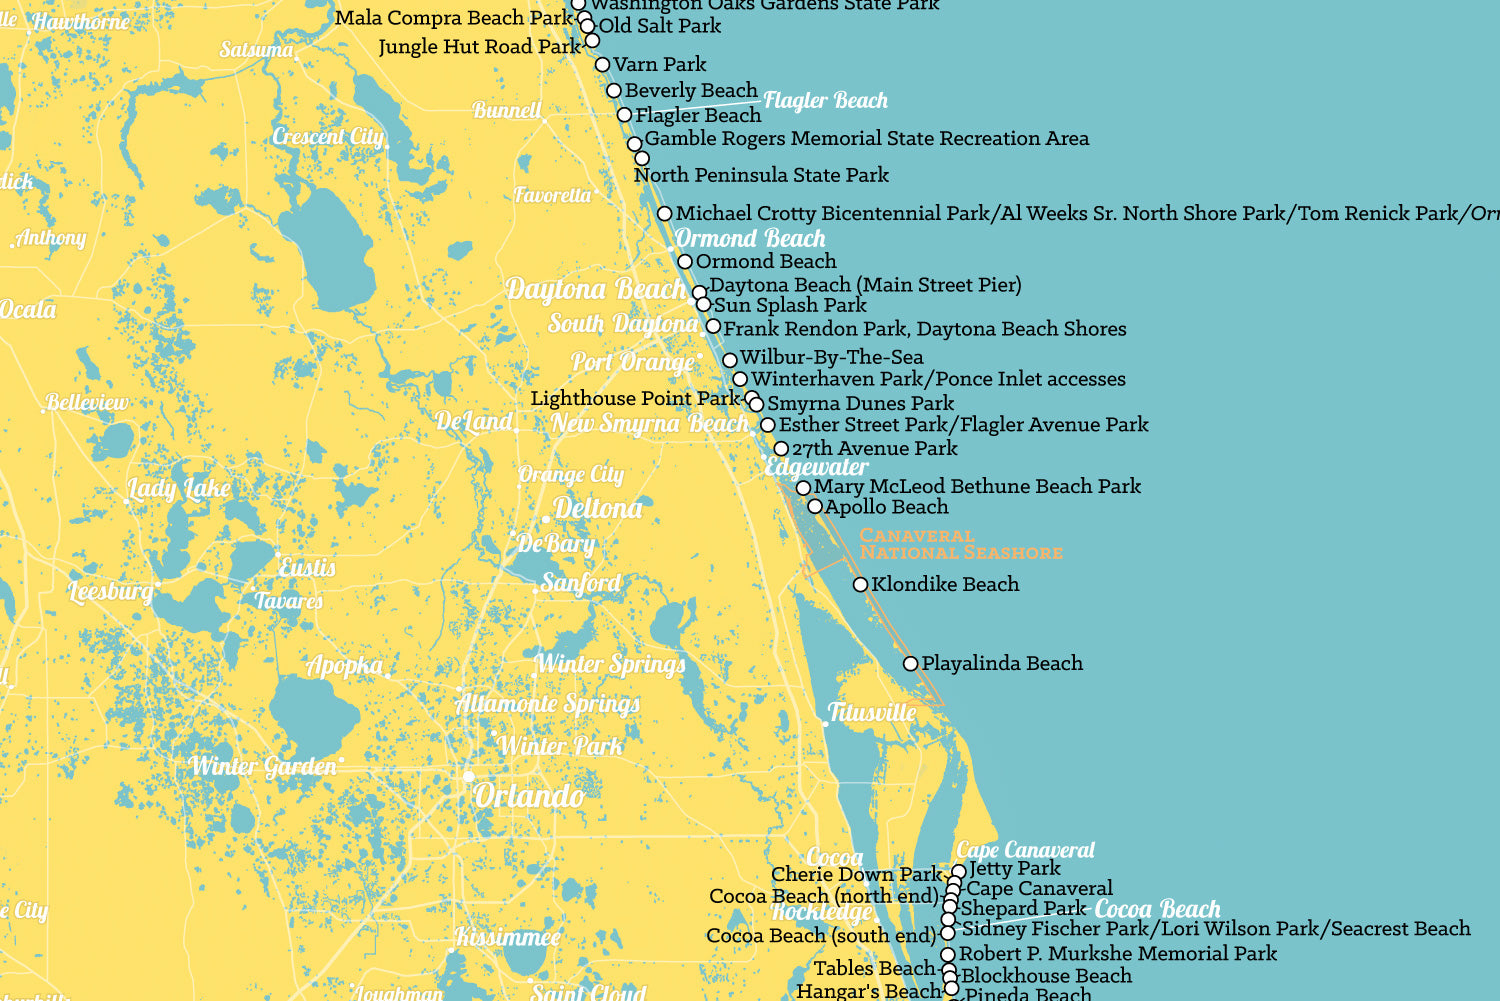 Florida Beaches Map.Florida Beaches Map 24x36 Poster Best Maps Ever